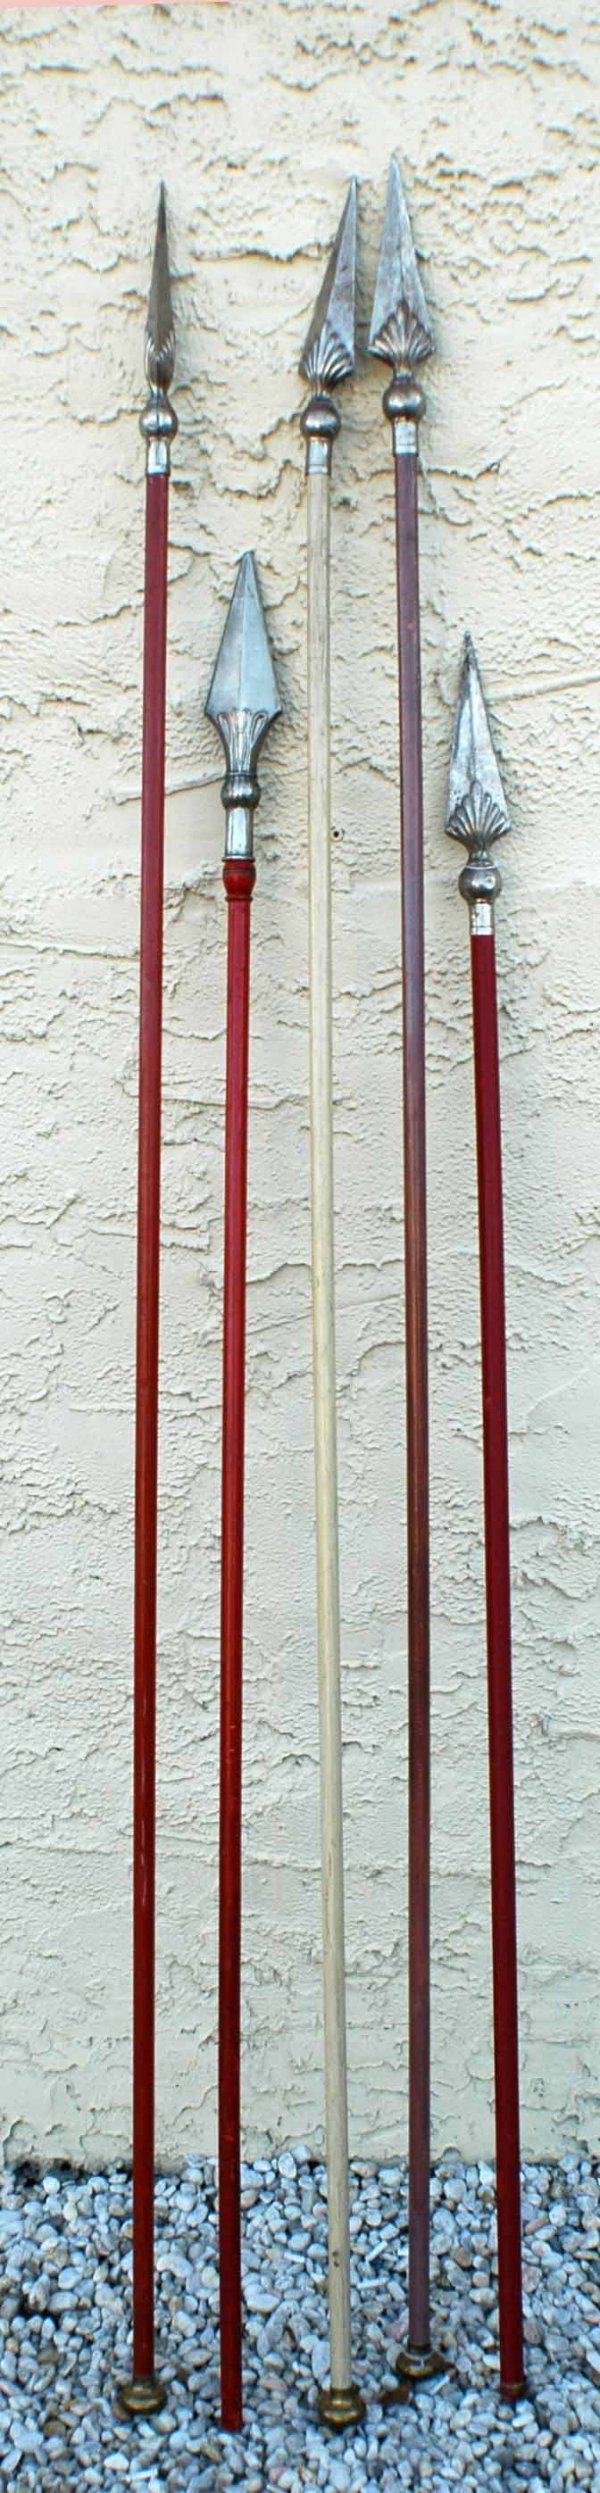 1016: Group of 9 reproduction spears. (150/250)